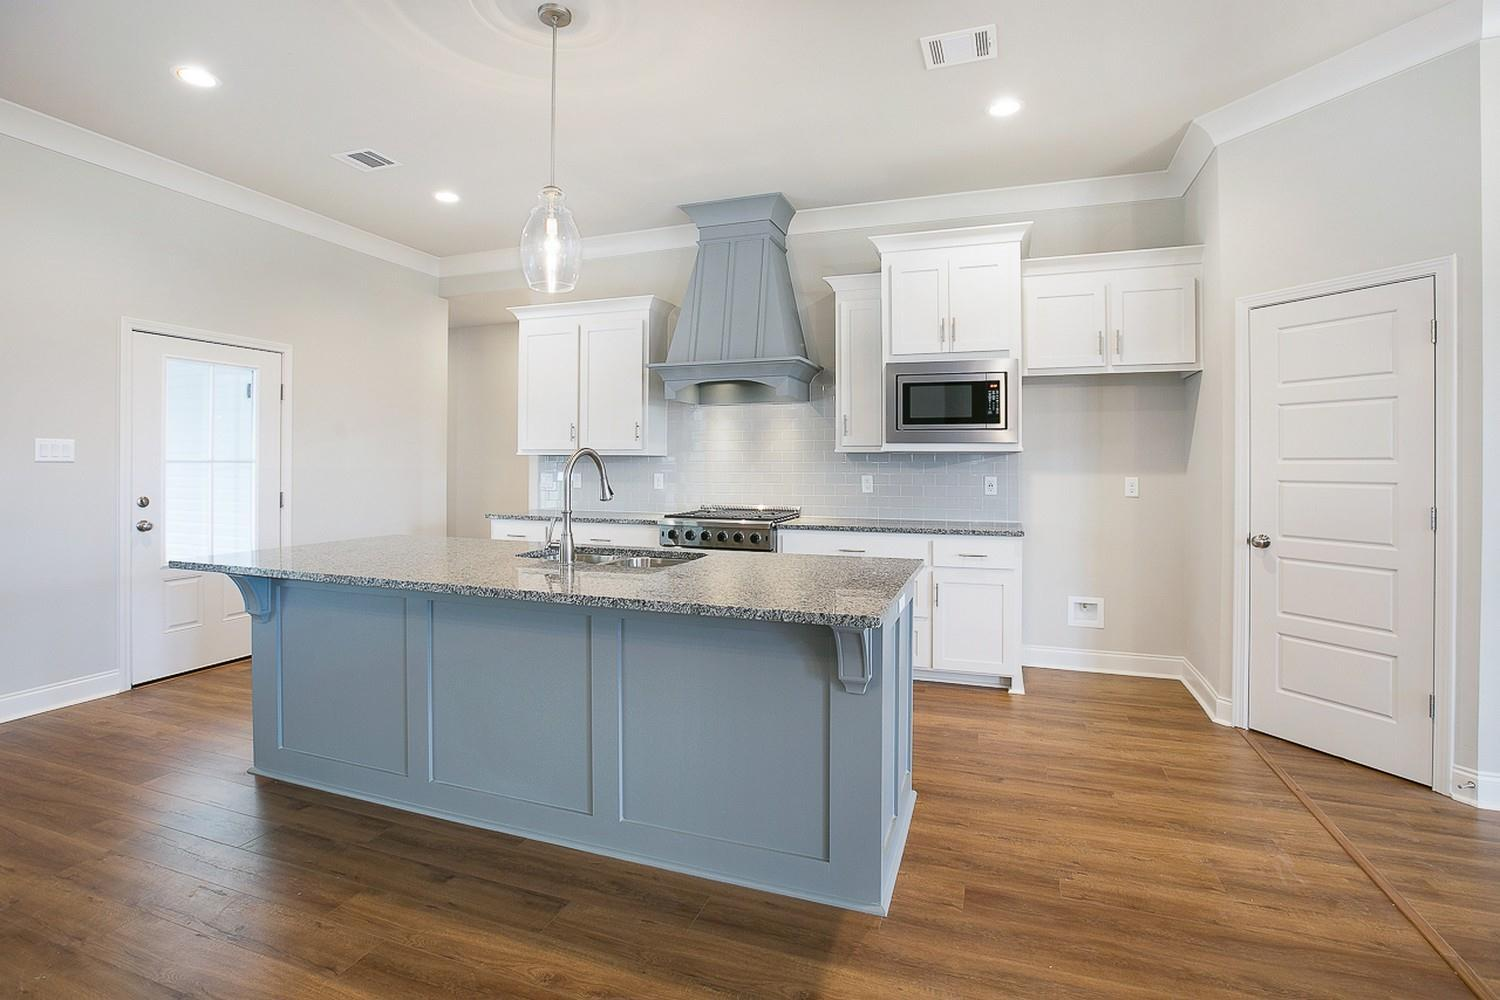 Kitchen featured in the Wellington I By Willie & Willie  in Baton Rouge, LA